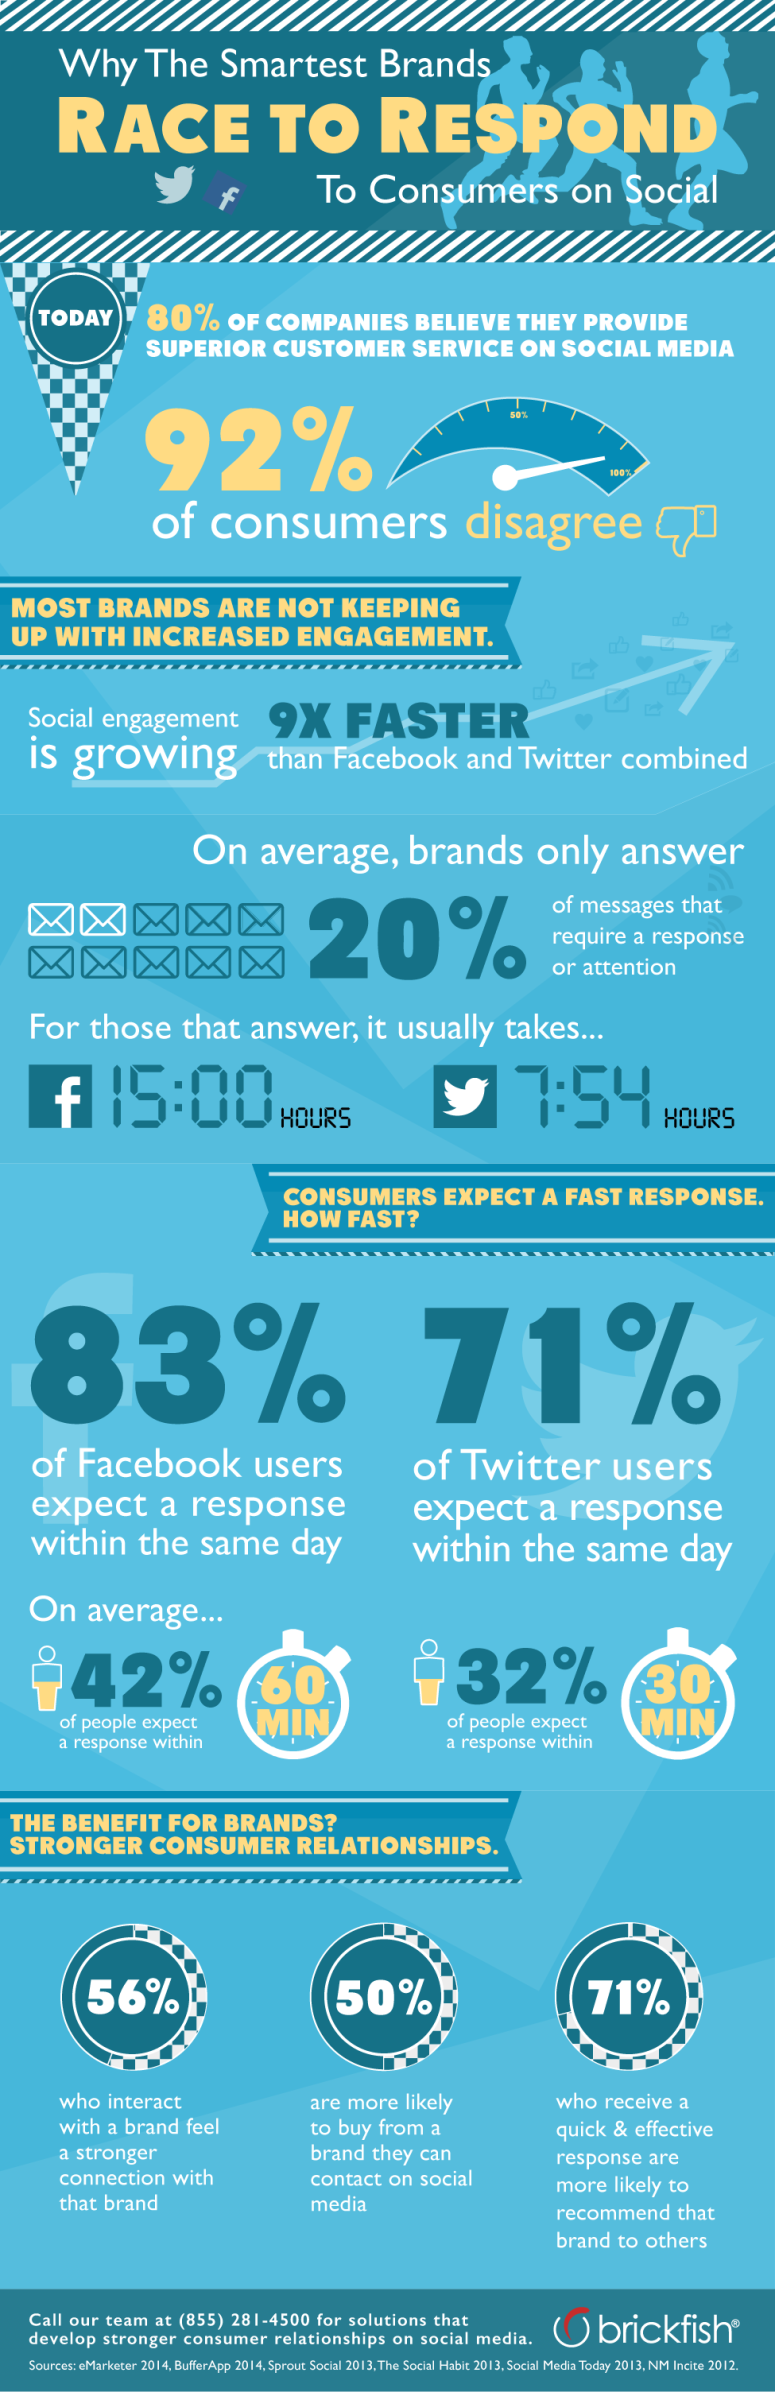 brickfish-infographic-socialcustomerservice